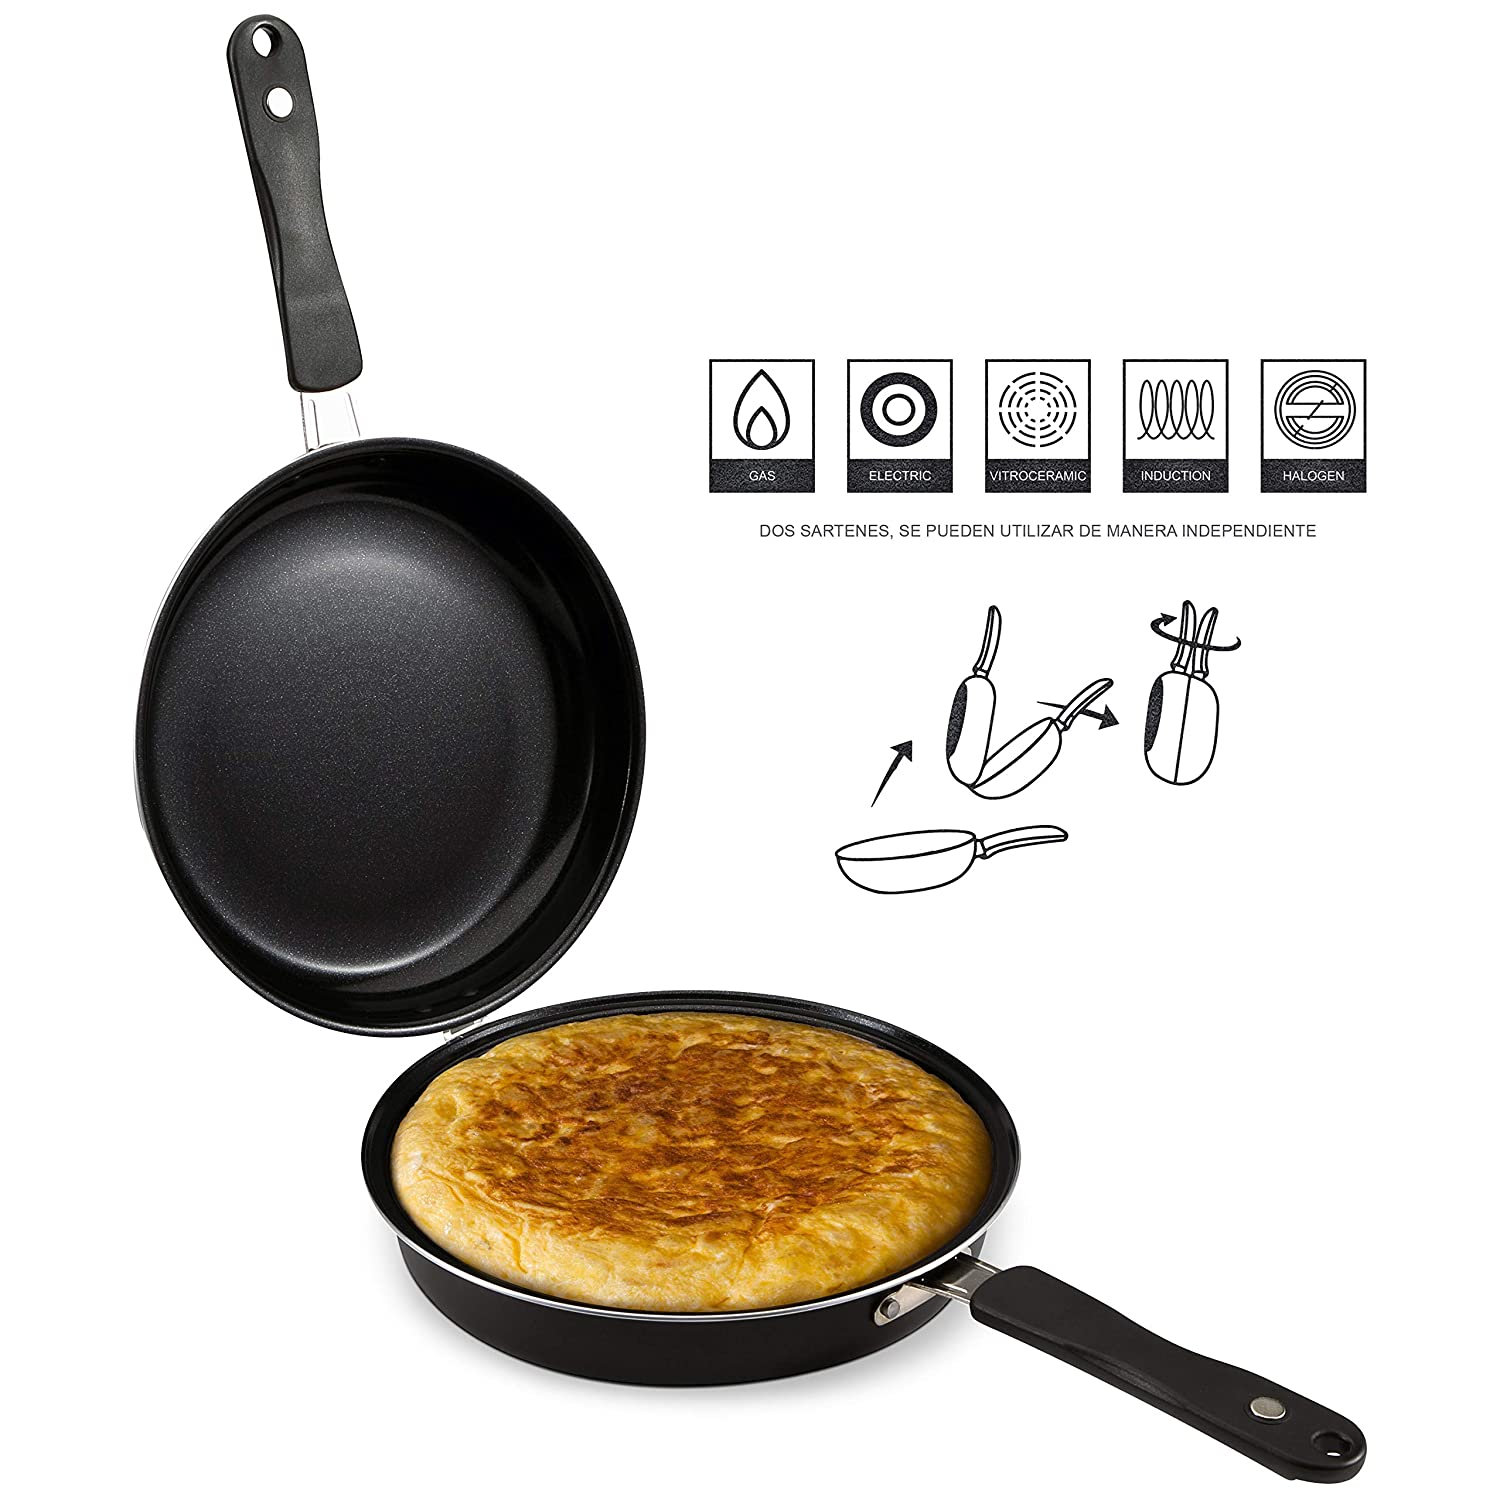 Amazon.com: Renberg Q2914 Double Frying Pan, Special Tortillas, 24 x 9.5 cm, Induction, Malaga, Black: Home & Kitchen